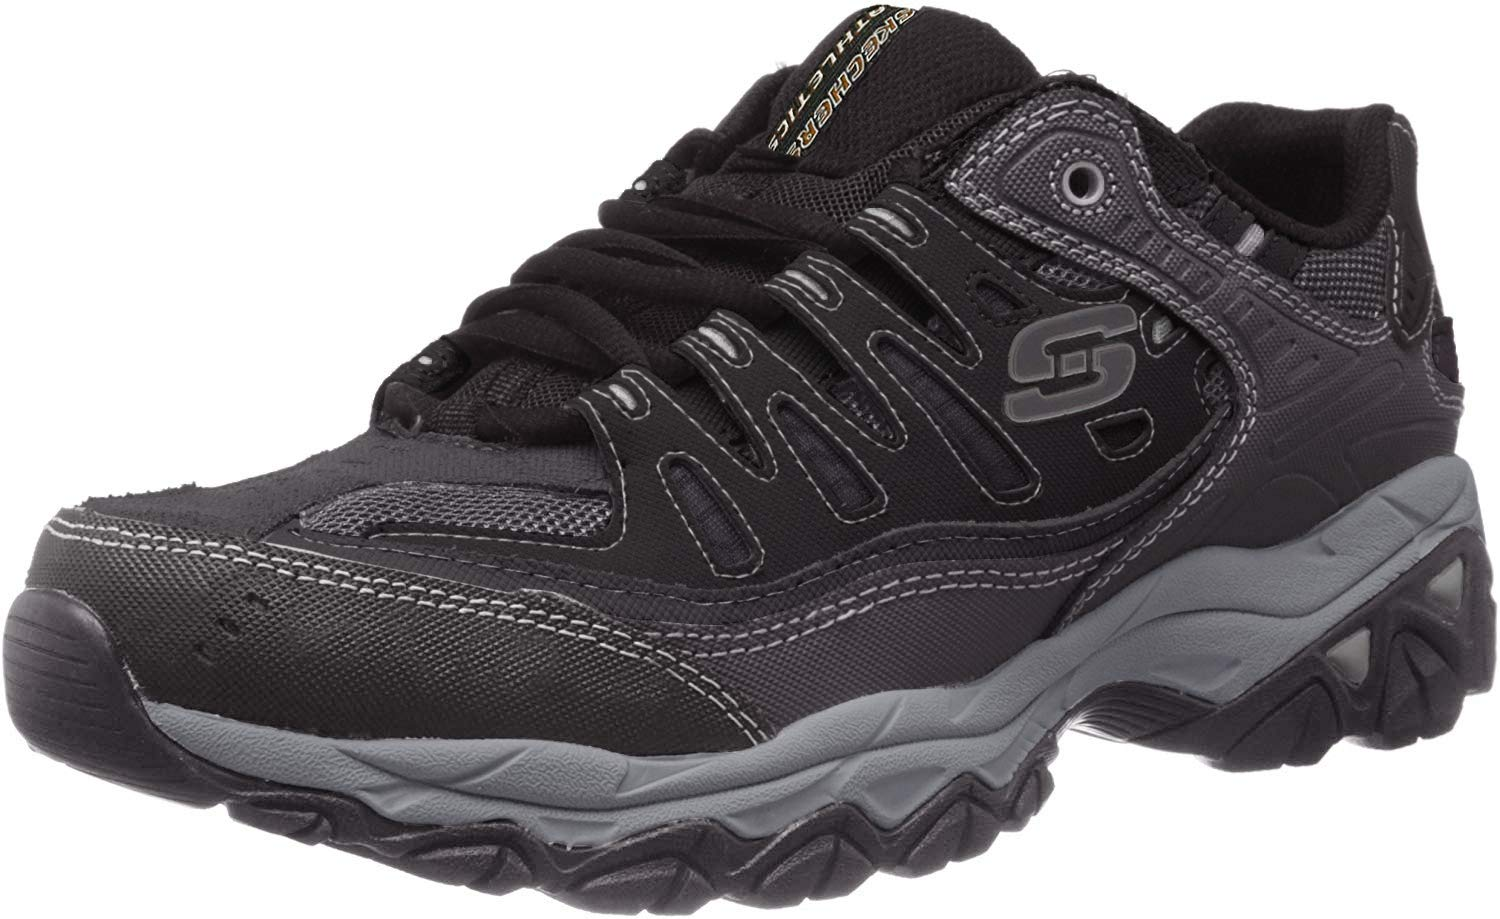 Skechers AFTER BURN M FIT Memory Lace Up Sneaker